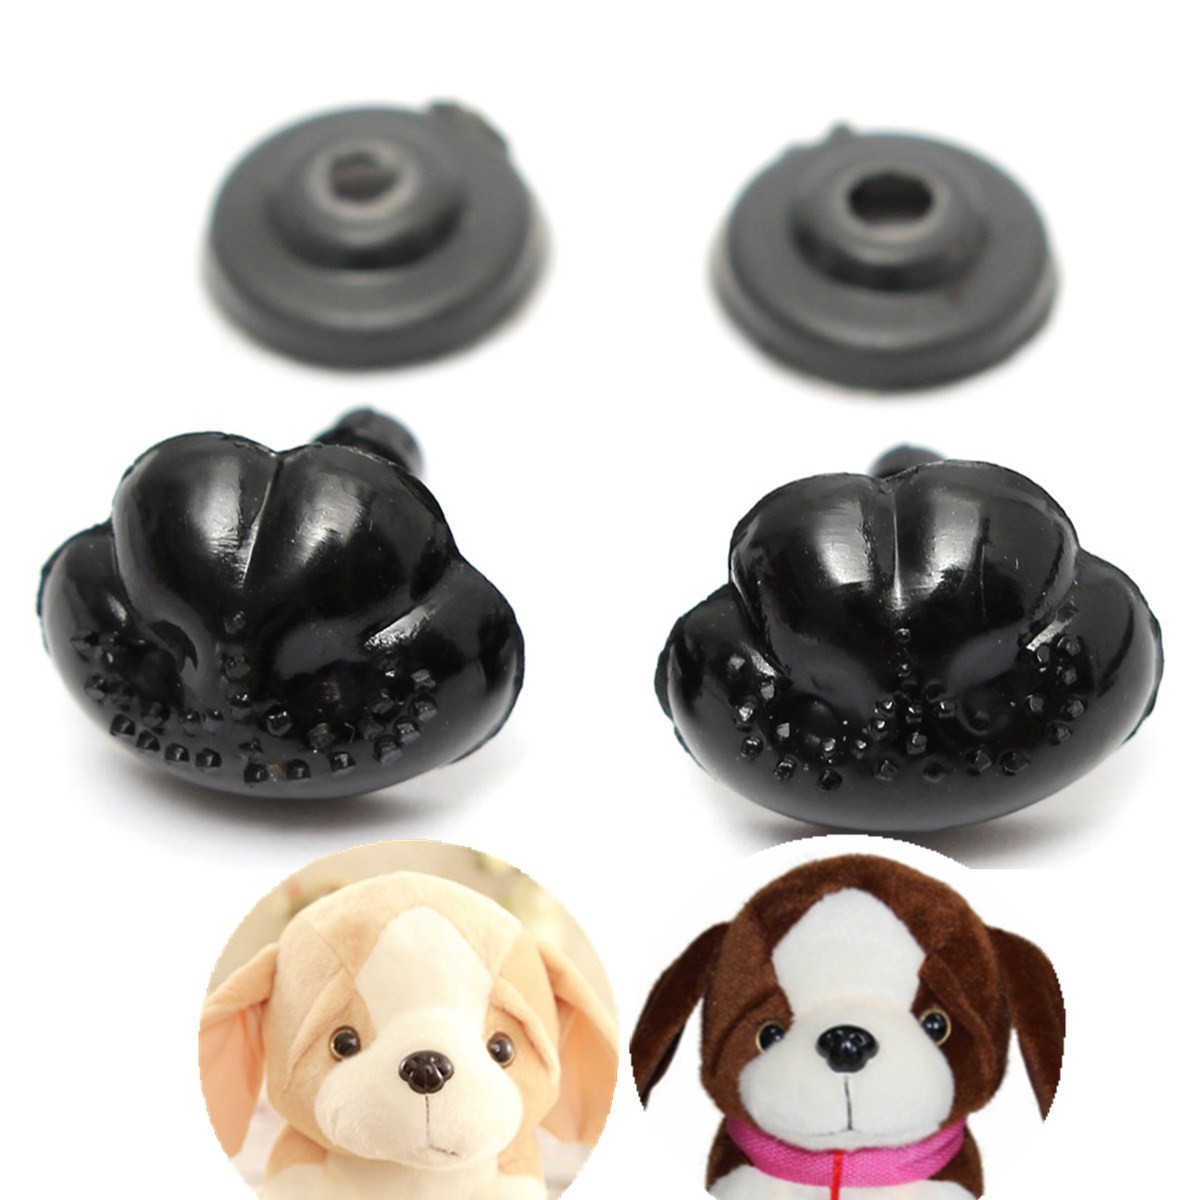 100Pcs/Set 15*12MM Black Plastic Safety Noses For Teddy Bear Doll Animal Puppet Crafts Children DIY Toys Accessories dog Nose